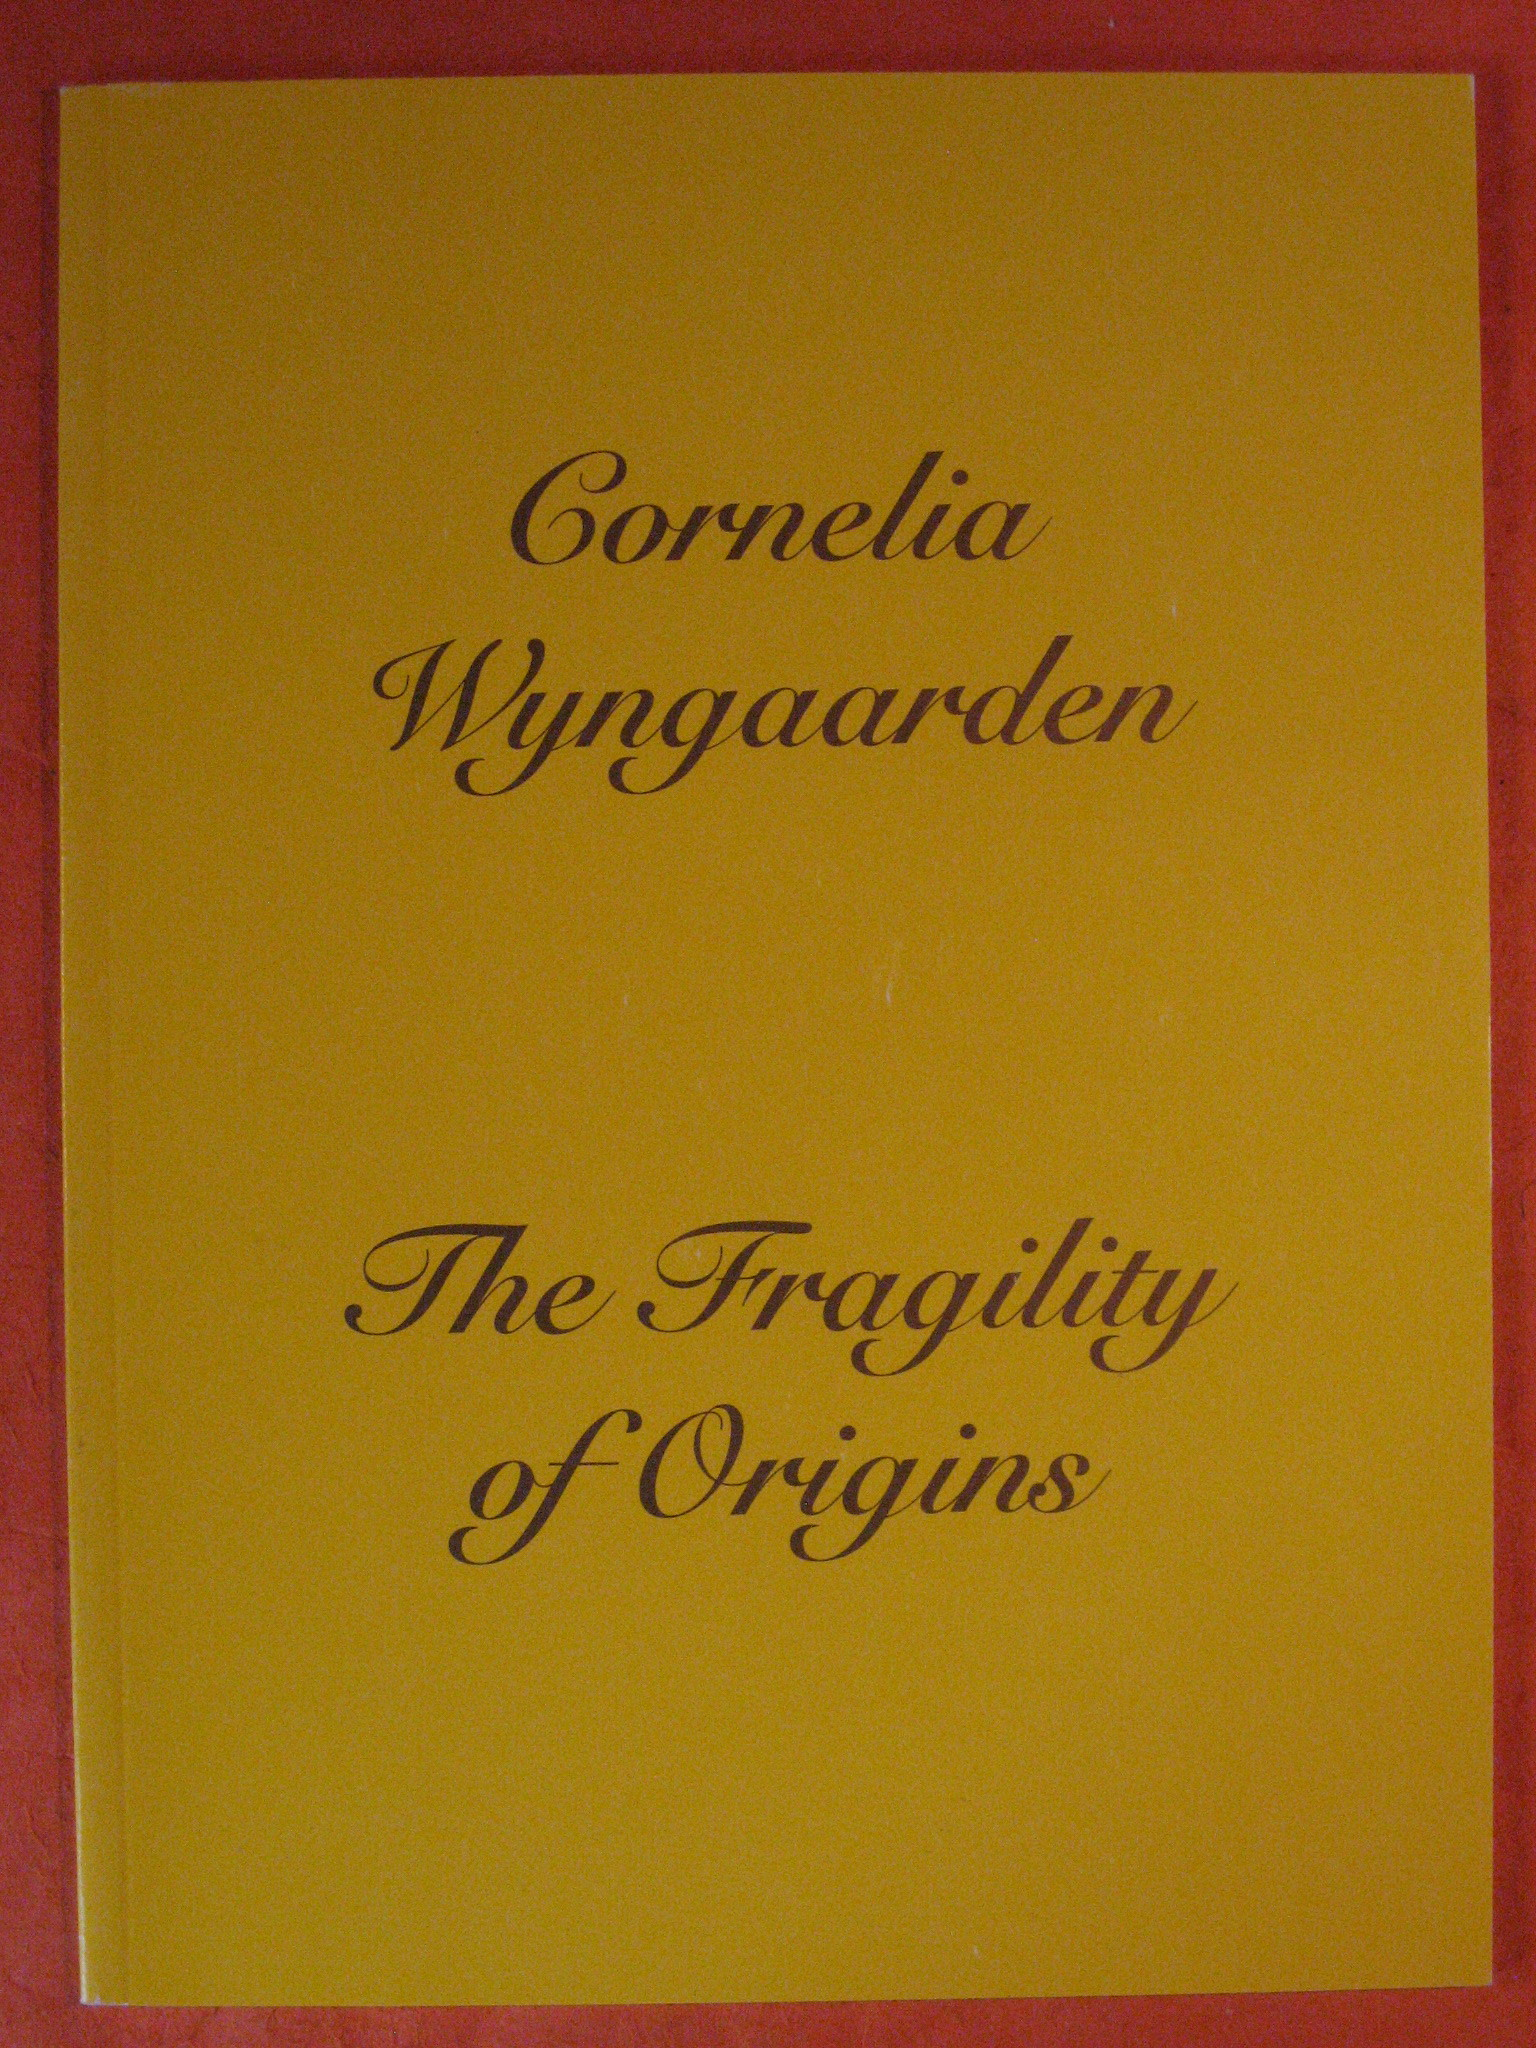 Fragility of Origins: Cornelia Wyngaarden Nov 8 - Dec 16, 1994, The, Canyon, Brice; Lord, Susan' Watson, Scott